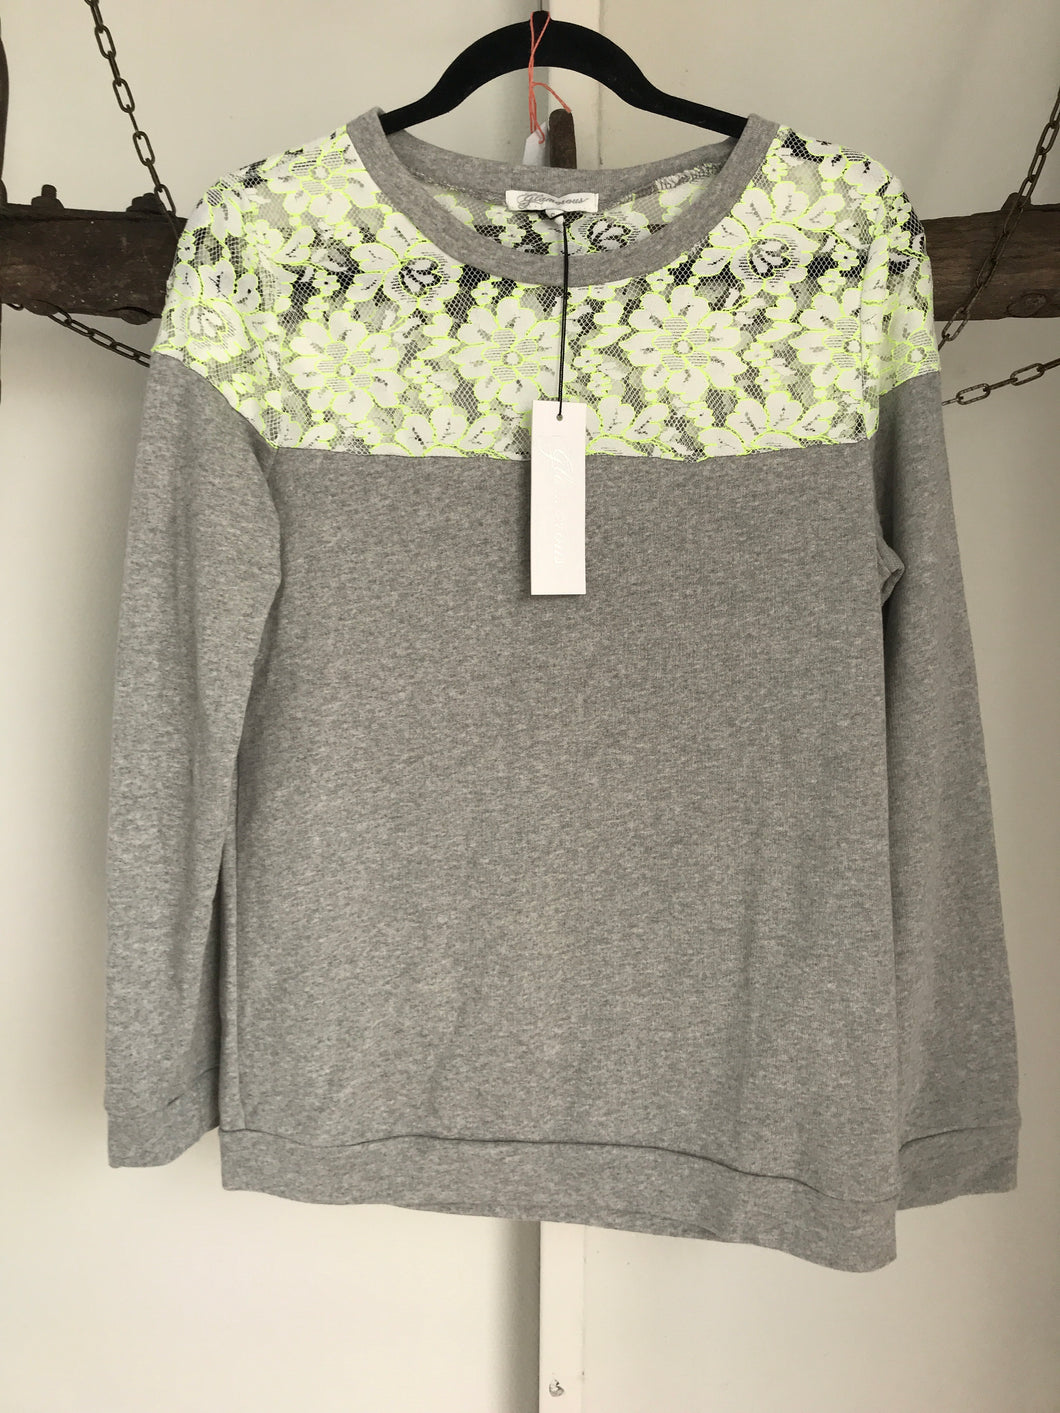 Glamorous Long Sleeve Grey Top Size S (10) NWT